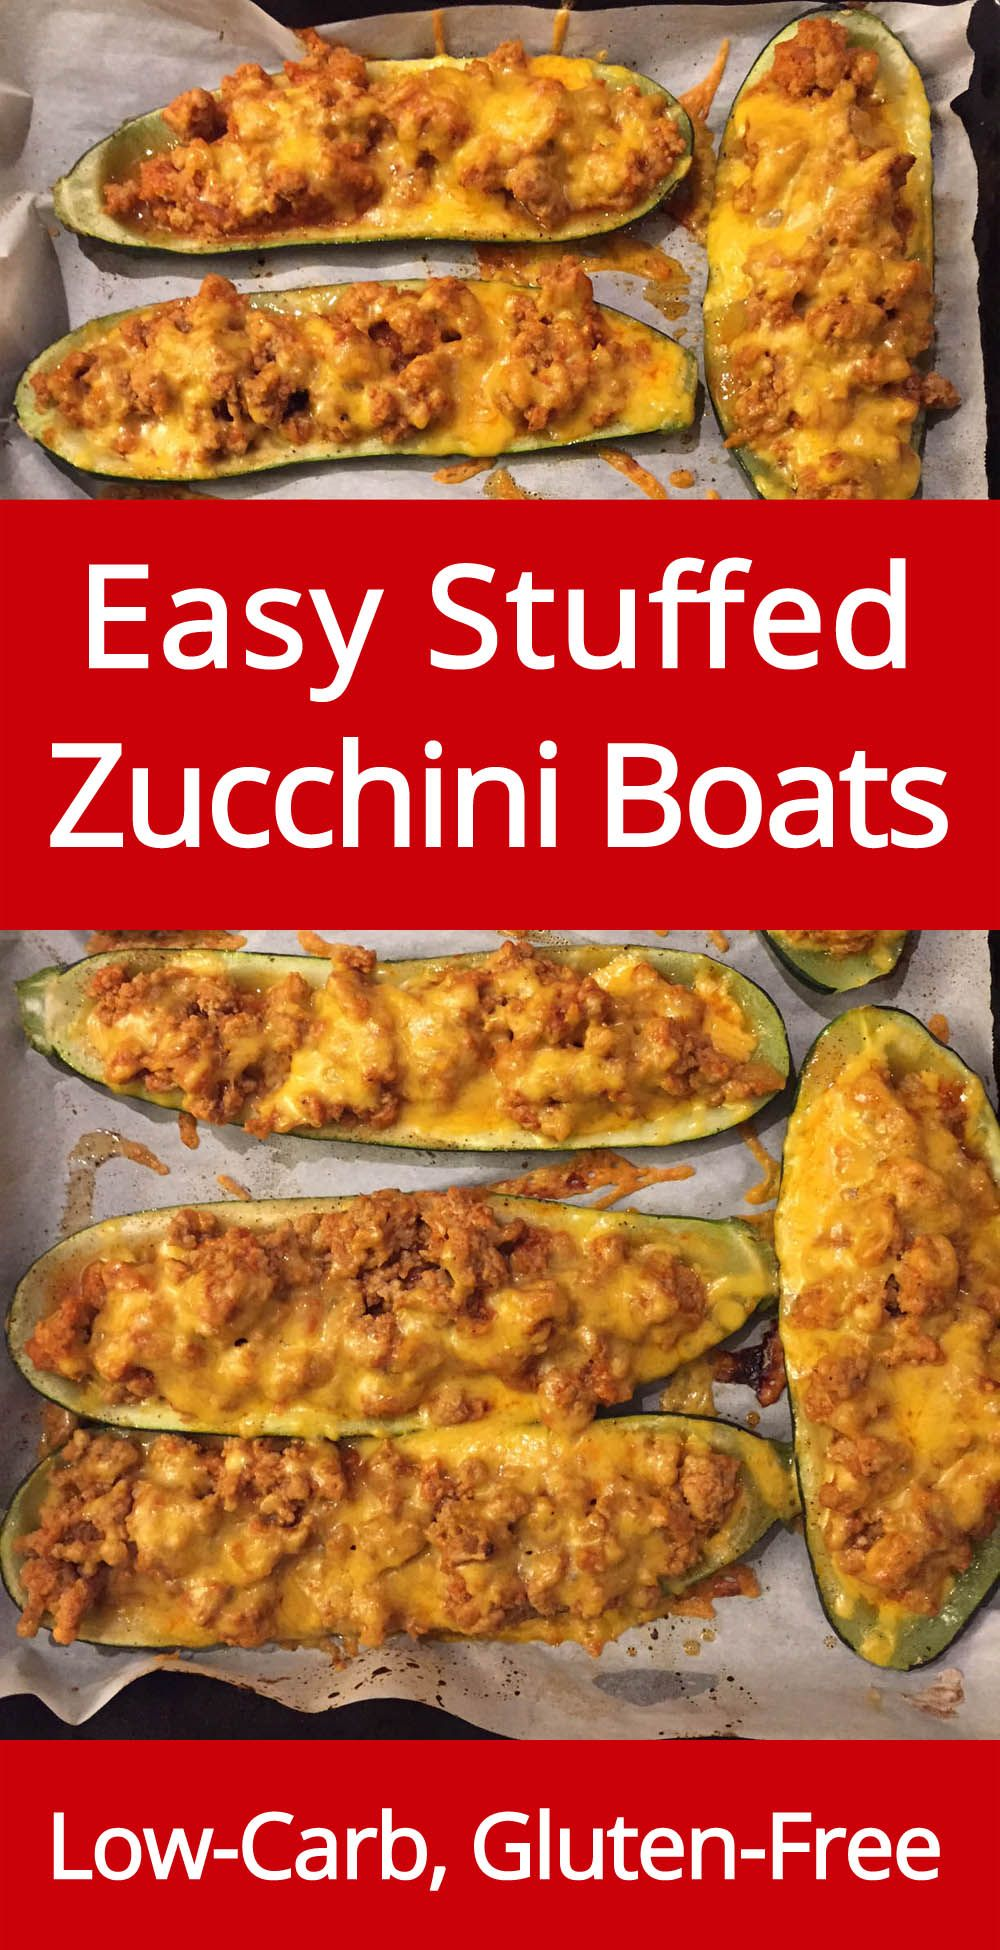 Stuffed Baked Zucchini Boats With Ground Meat And Cheese Recipe Baked Stuffed Zucchini Baked Zucchini Boats Meat Recipes